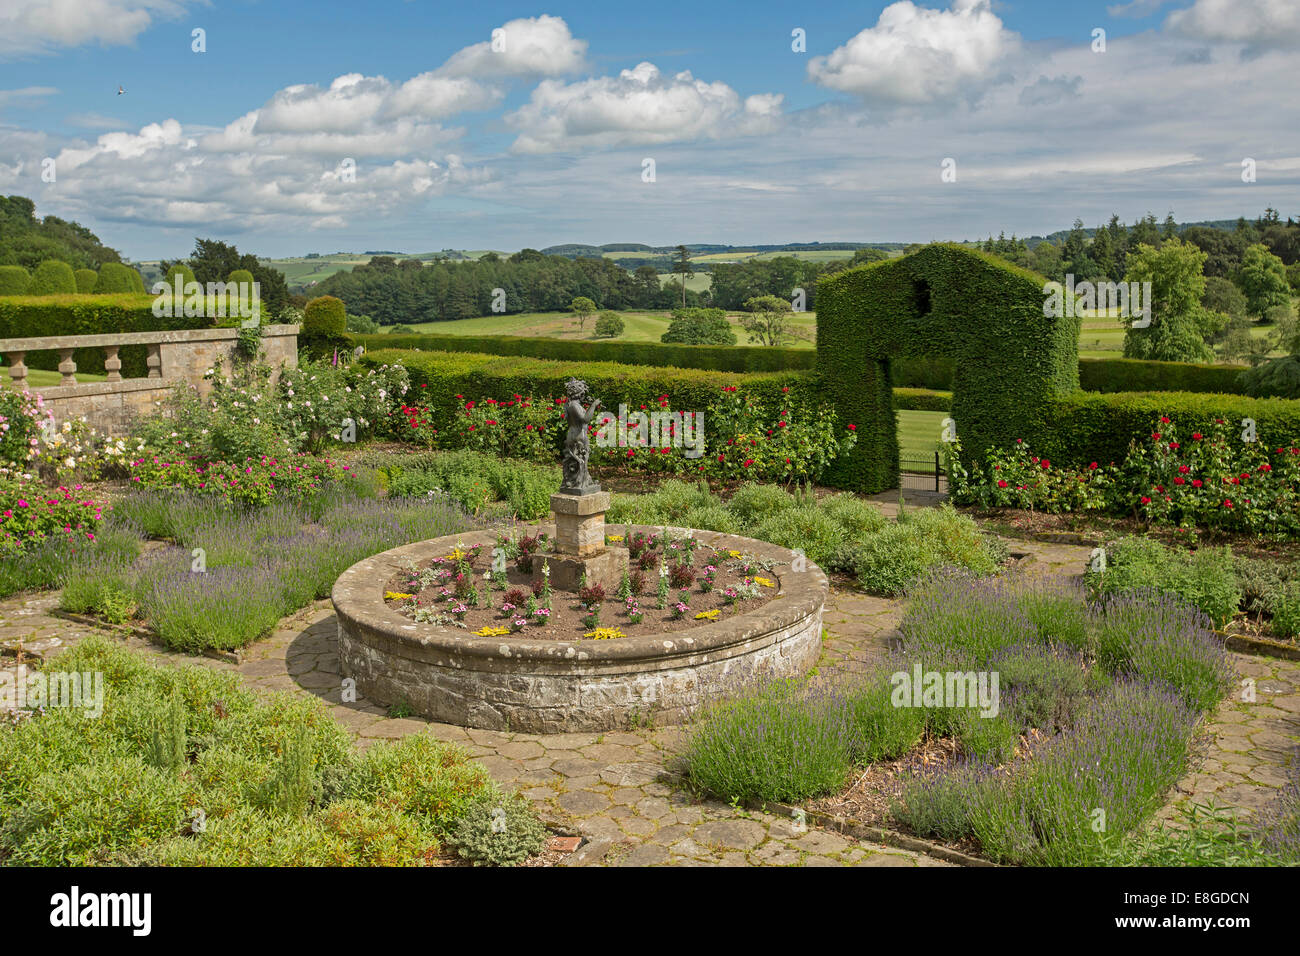 Formal garden with lavender, red roses, circular flower bed with statue, yew hedge, & stone paving at Hill of - Stock Image